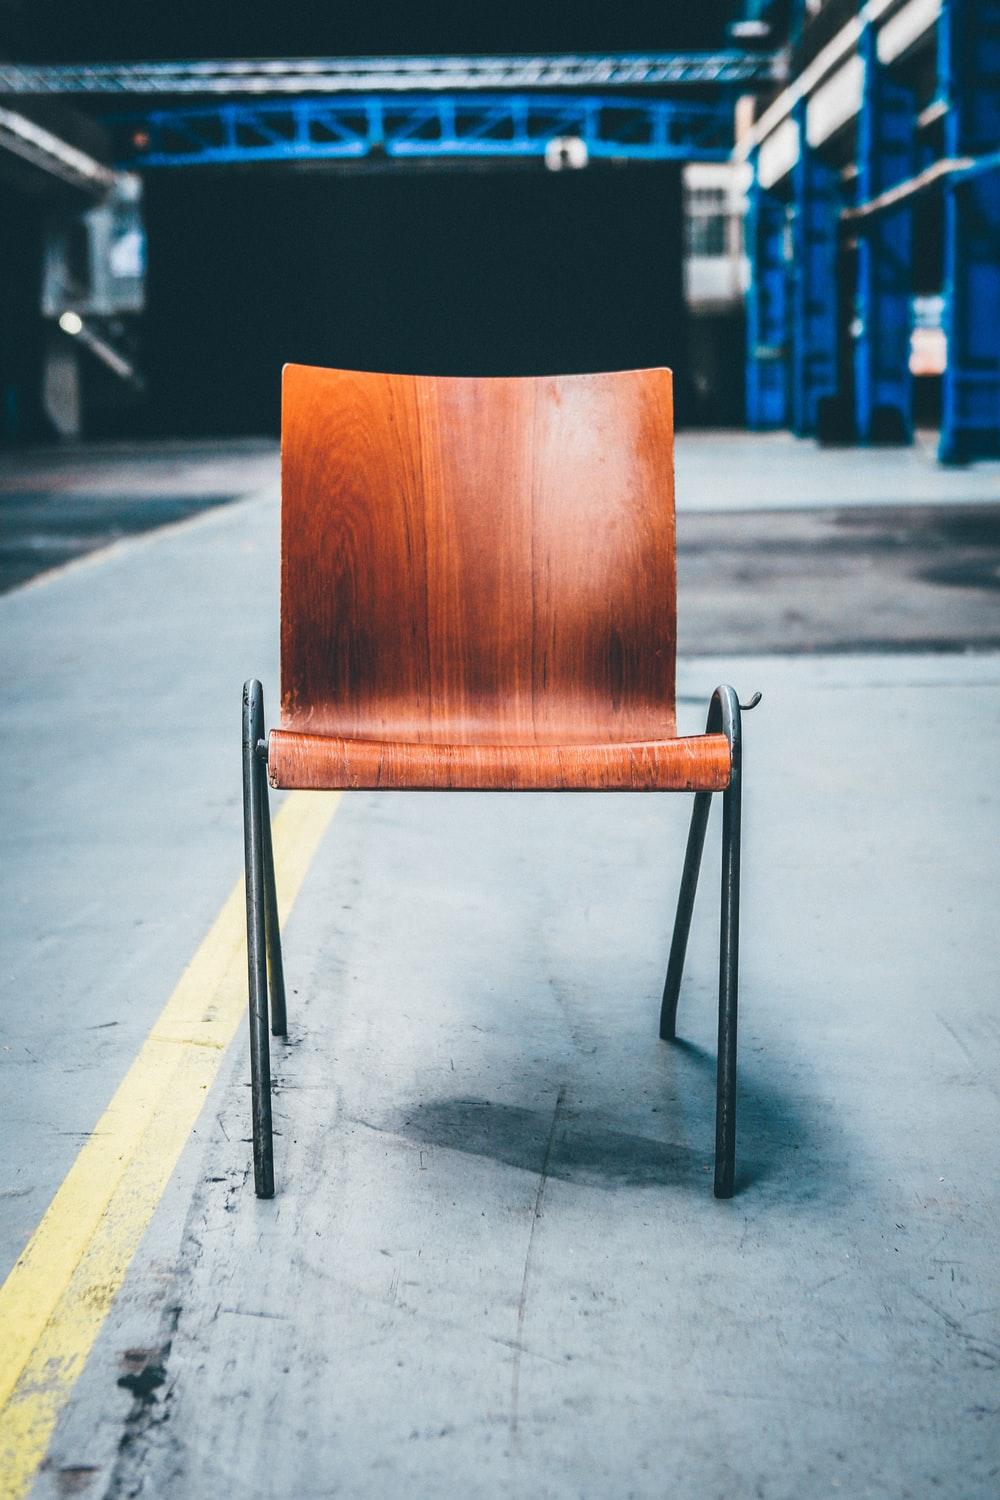 brown wooden chair with black metal base on gray pavement